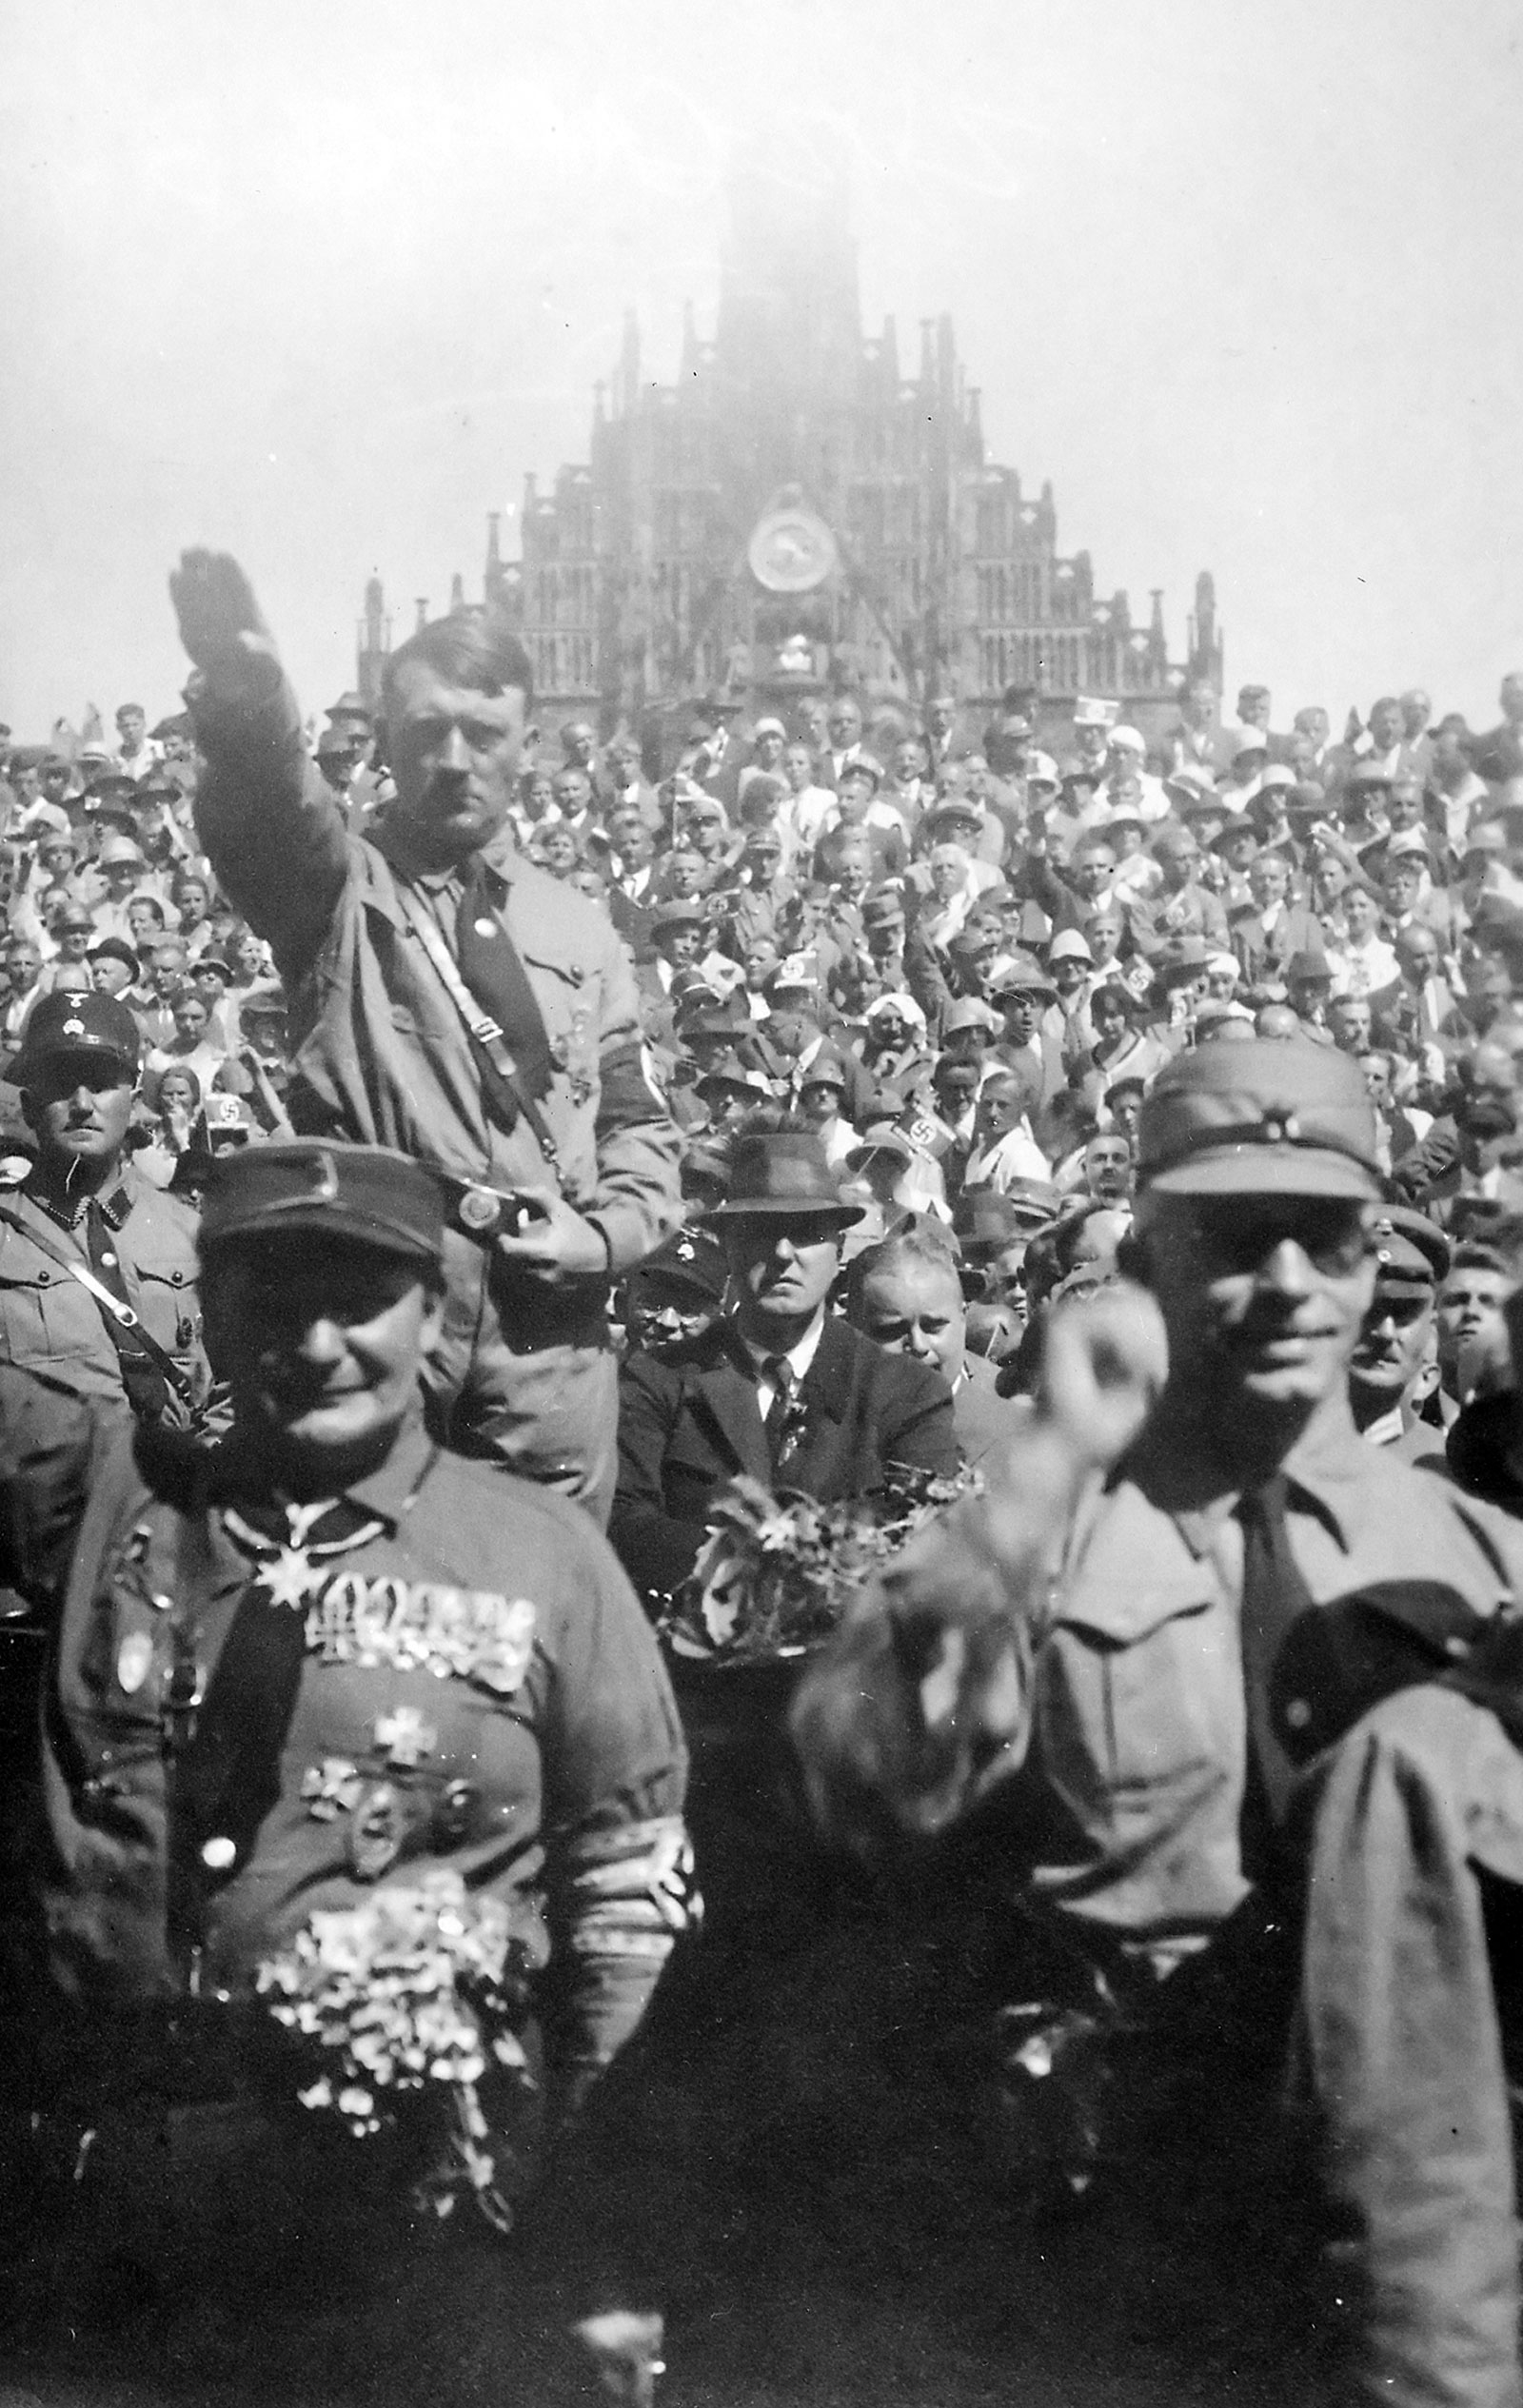 Adolf Hitler at a Nazi Party rally in Nuremberg, Germany, in 1928. Hitler is standing. In front of Hitler is Hermann Göring. Hitler, a veteran of World War I and out-of-work painter, would ultimately become dictator of Germany.